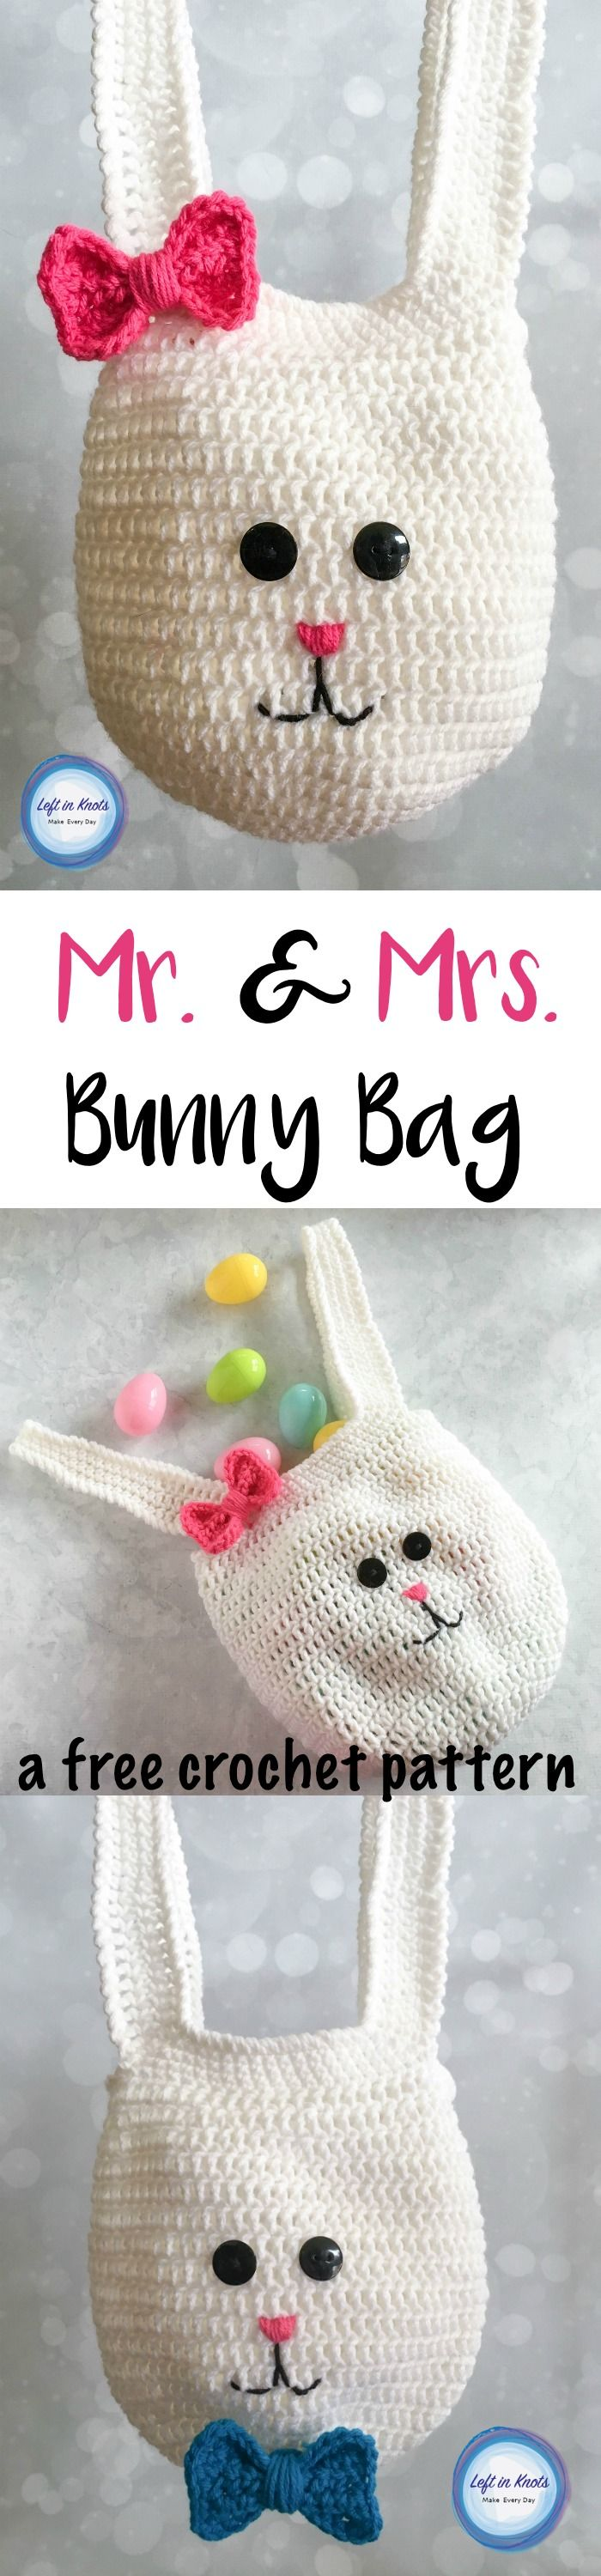 Make these bunny bags for all of your egg hunters this Easter! A simple and free crochet pattern.